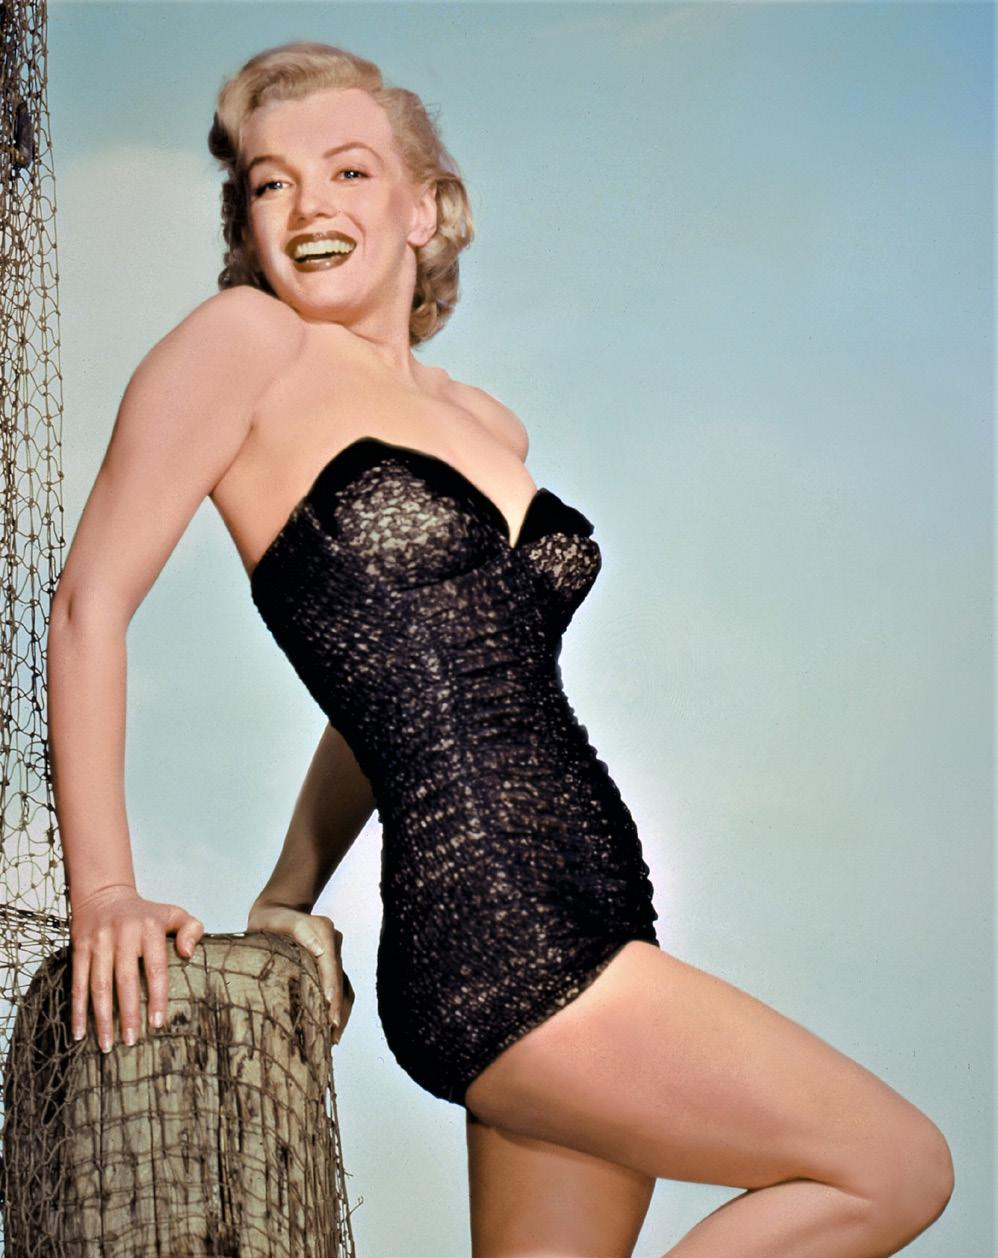 the exhibition Focused on Marylin Monroe with, for the very first time in Europe, the lace and velvet swimsuit she wore for a photo shoot of the brand Catalina in 1951.